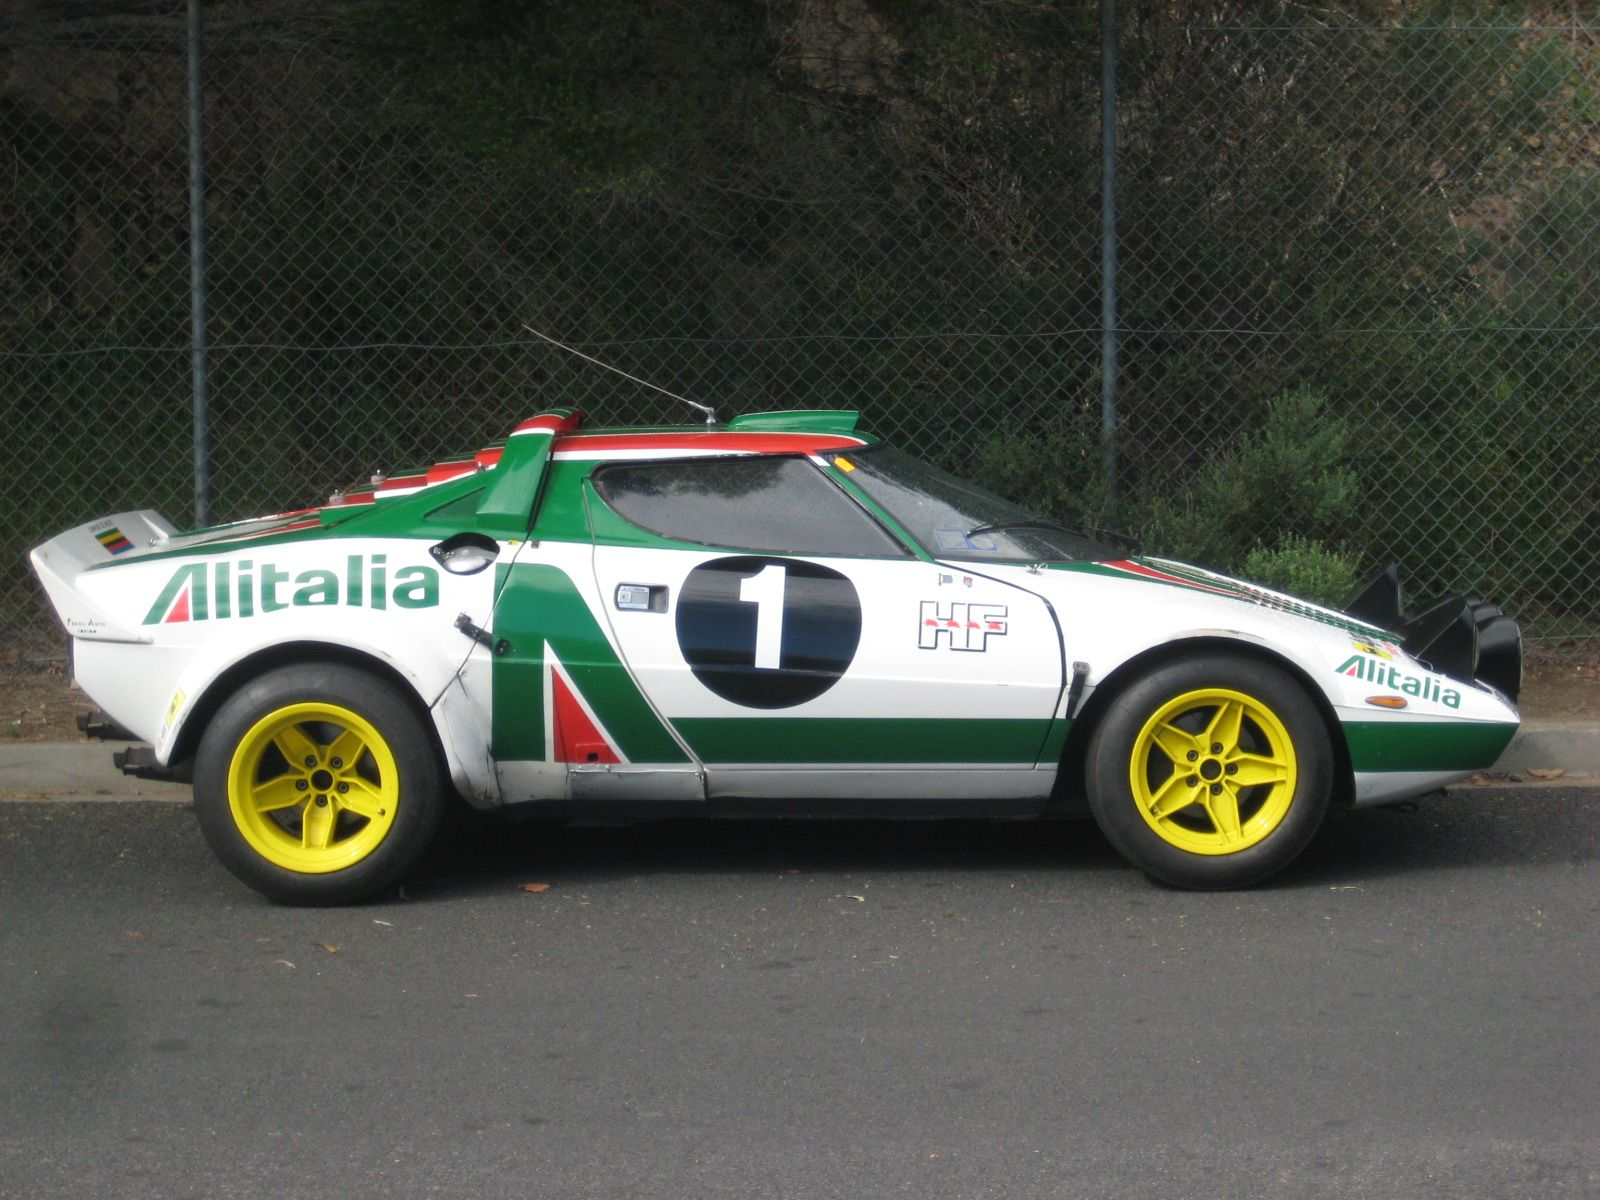 lancia stratos in racing livery | Cool Older Cars | Pinterest ...